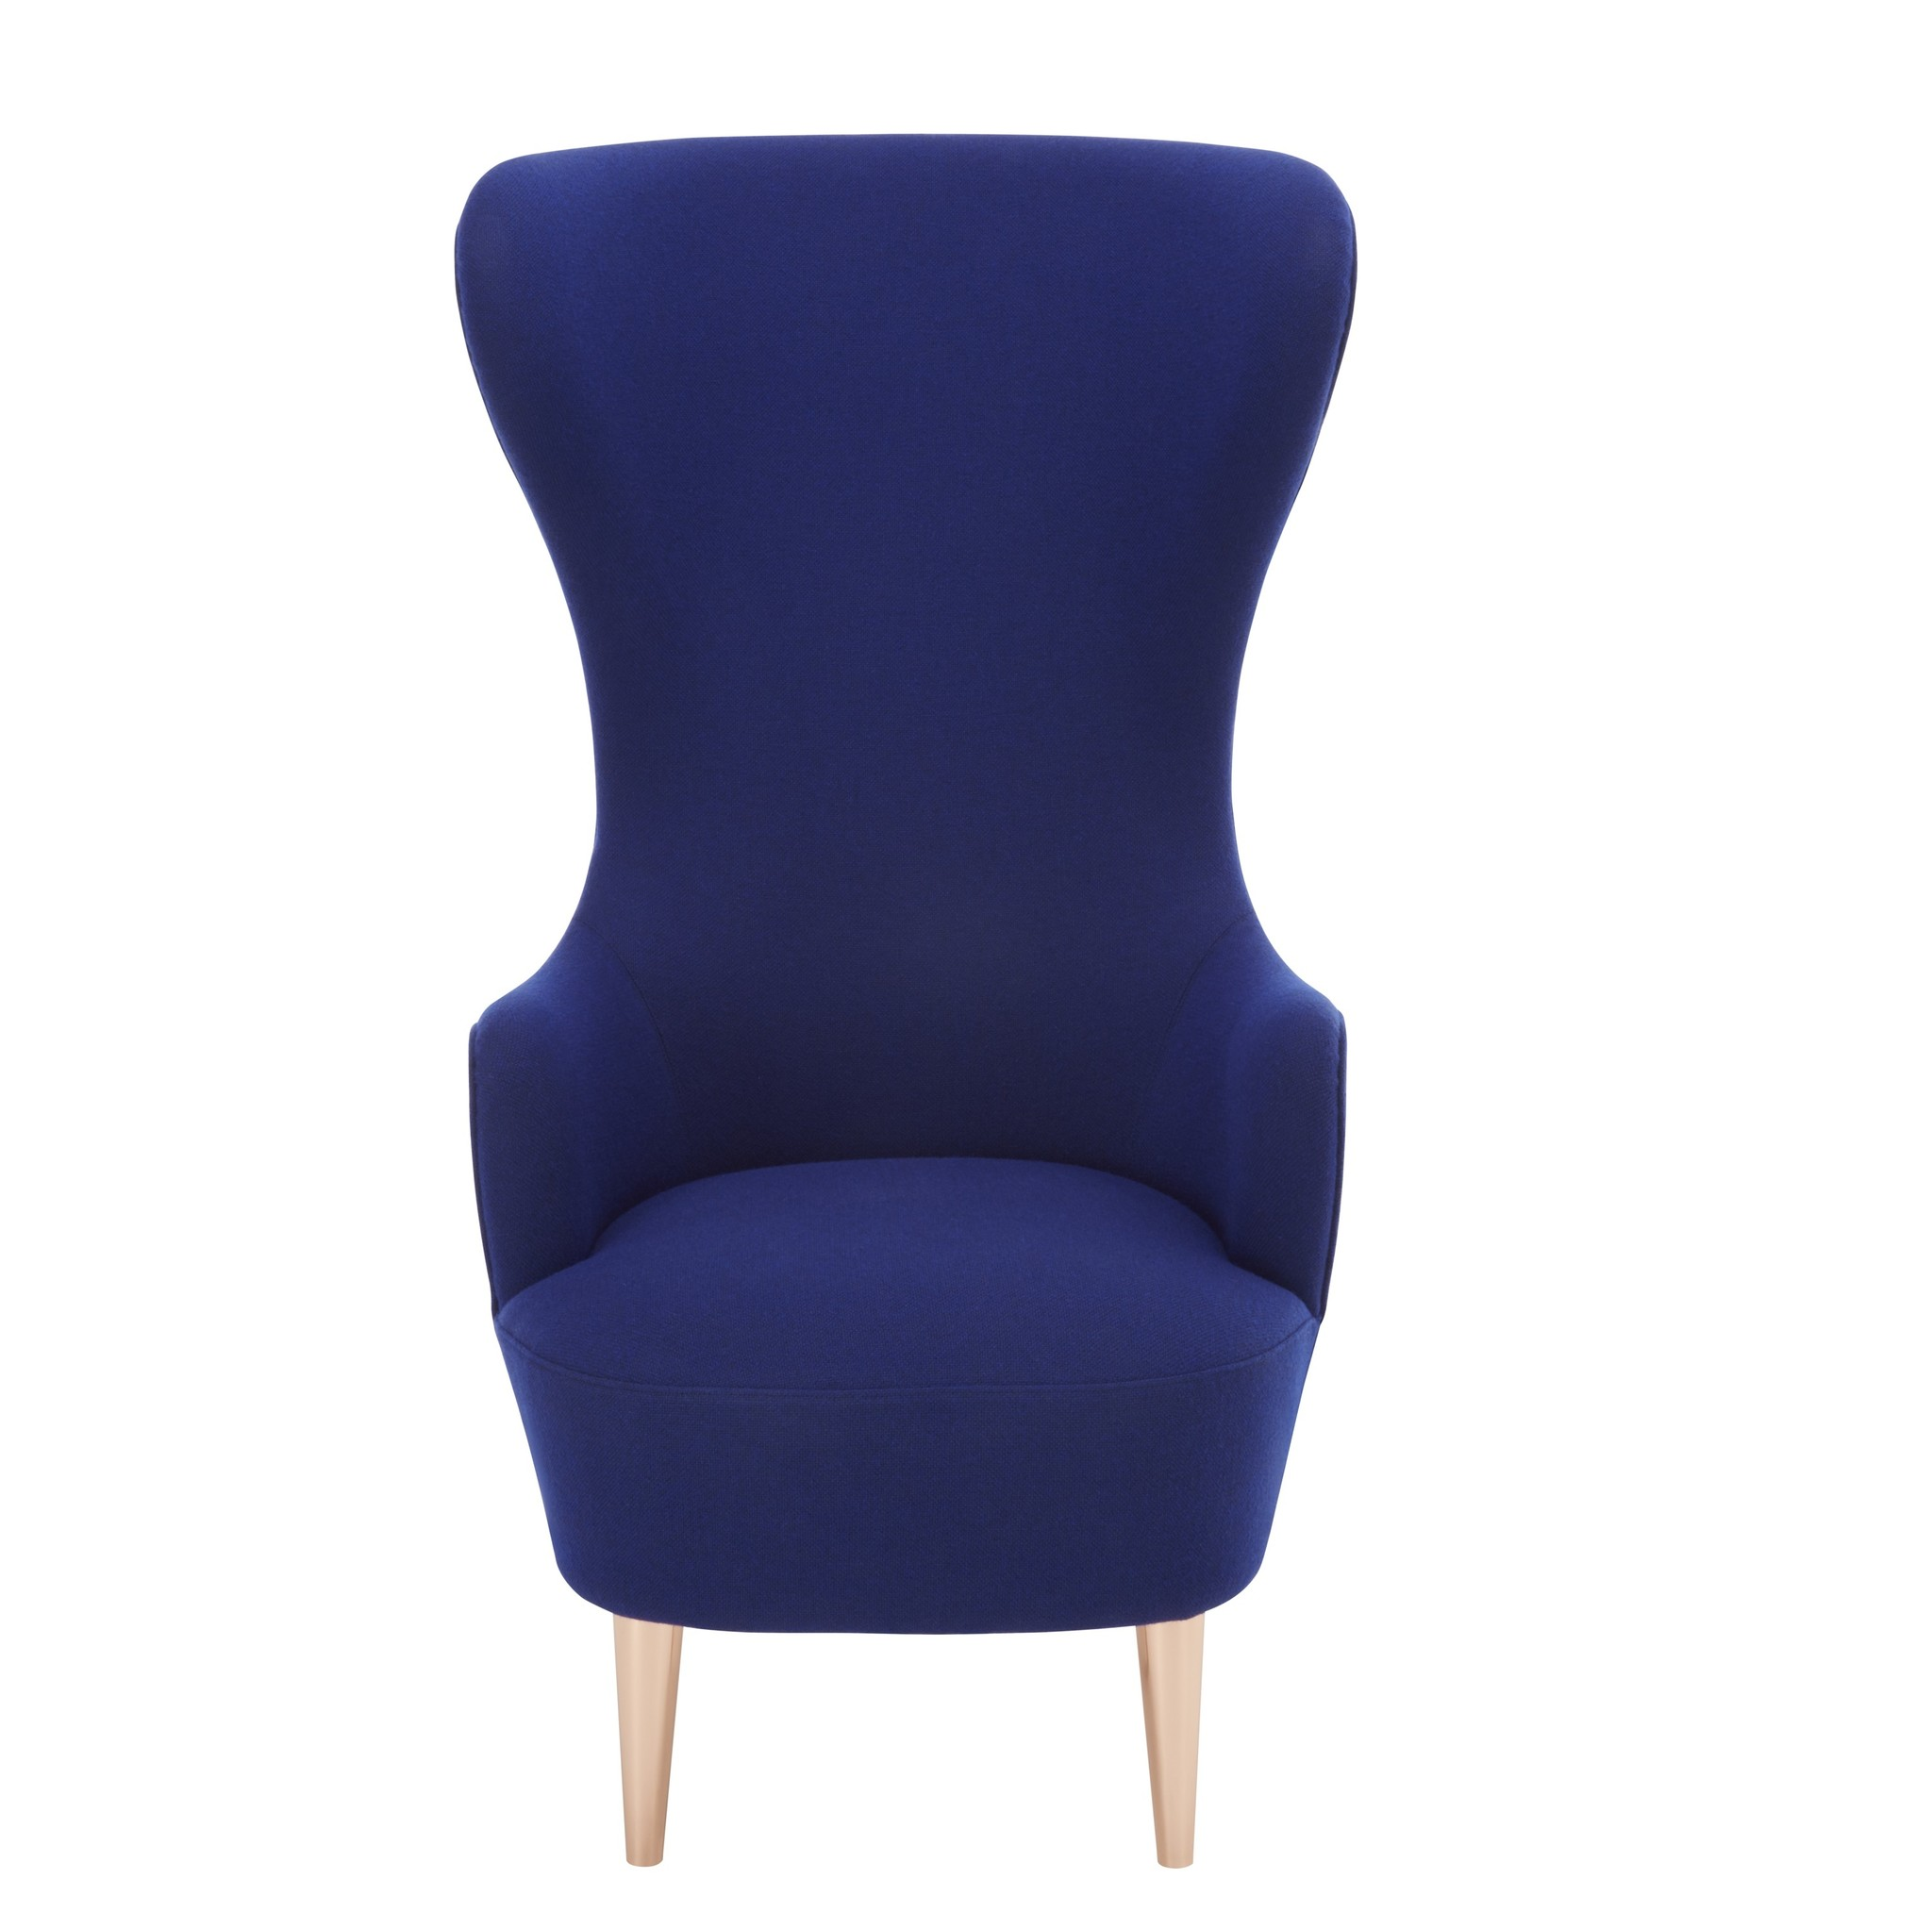 Wingback Micro chair B Kvadrat Divine Blue/copper